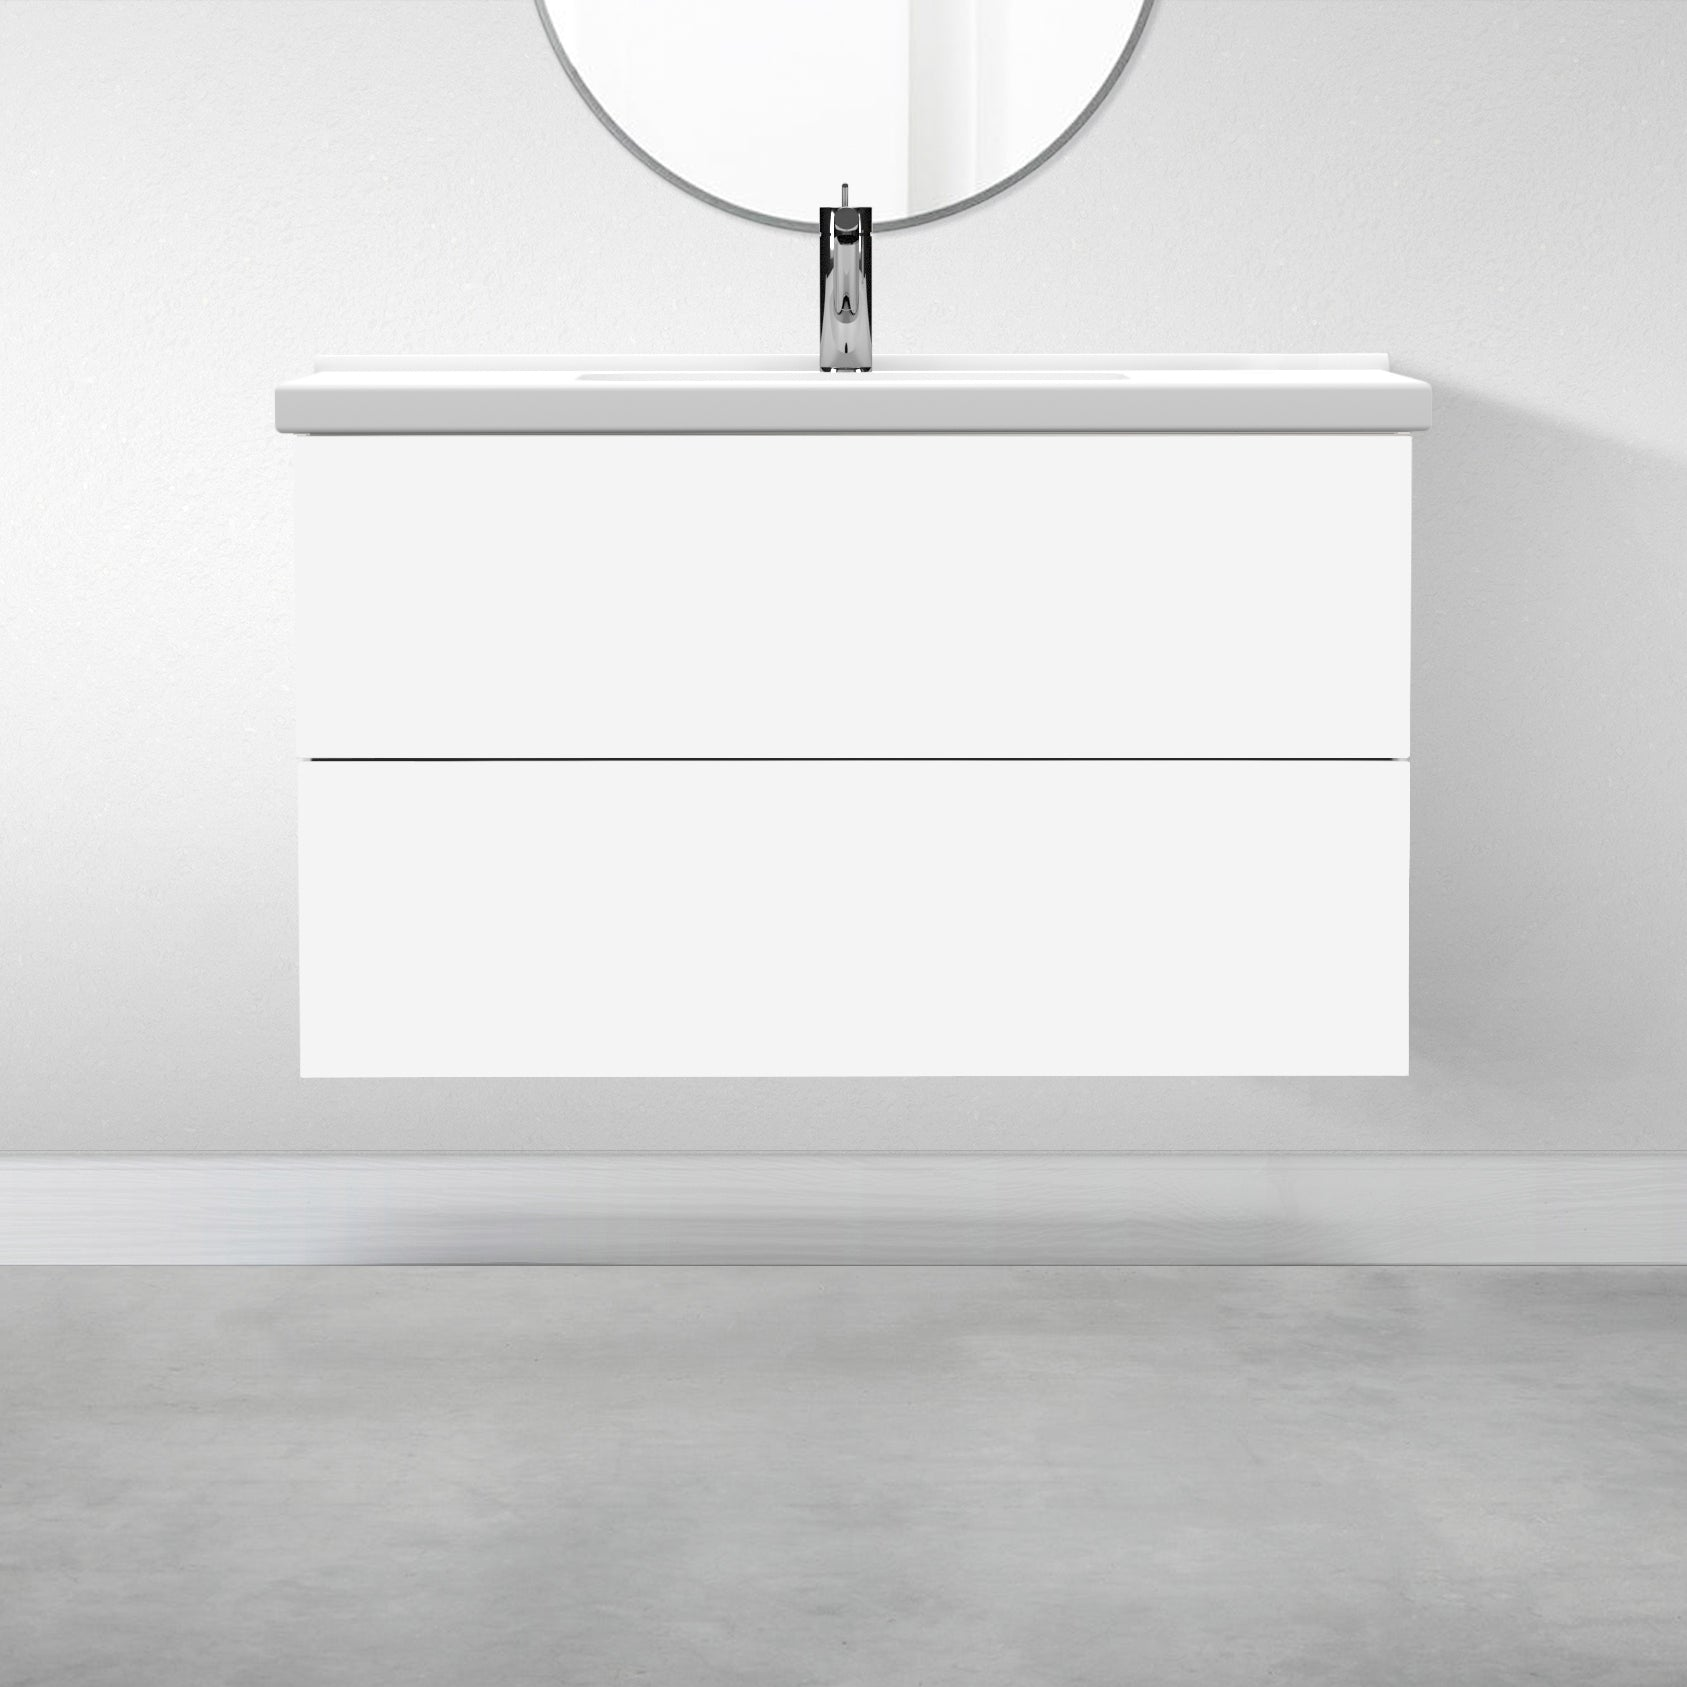 "2 Drawers - 39 3/8"" for Godmorgon Supermatte Slab / White"